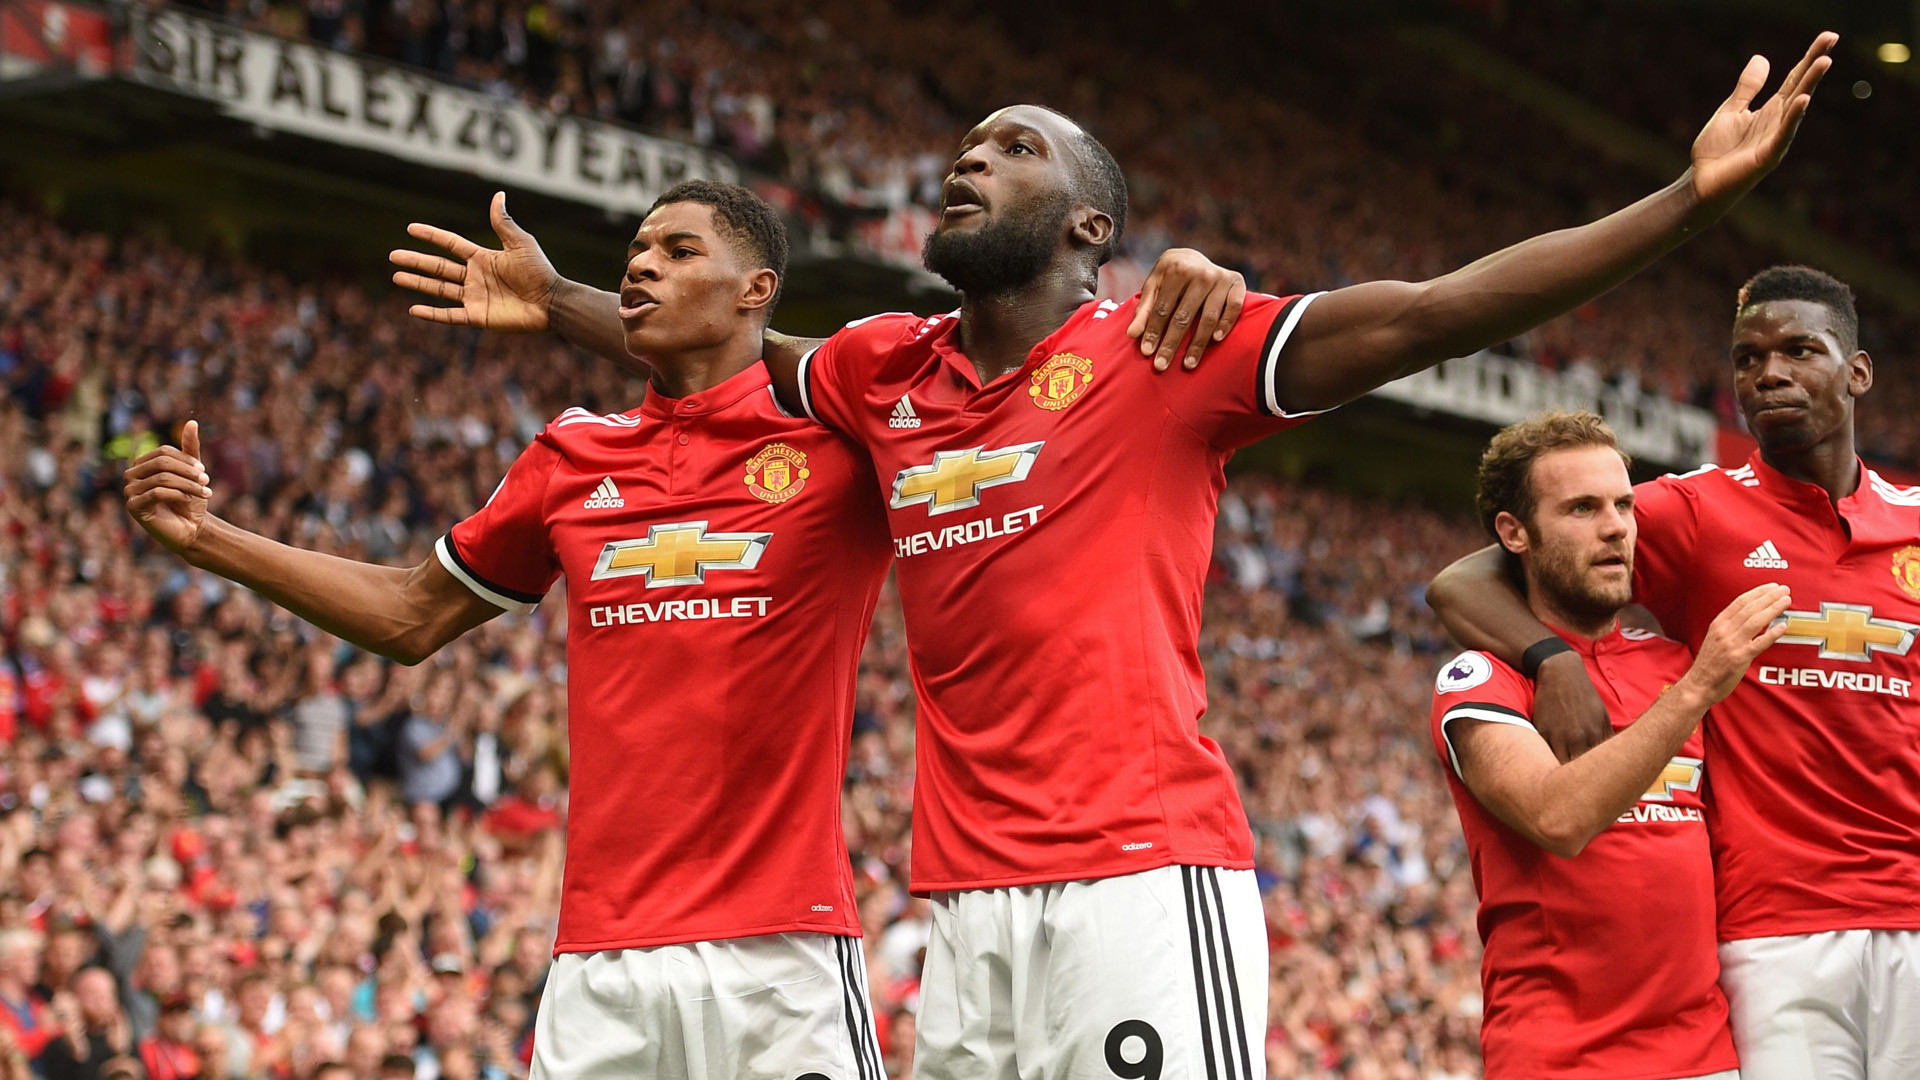 Jose Mourinho and his Manchester United began the 2017/2018 in emphatic  fashion, with a 4-0 drubbing of West Ham United at Old Trafford on Sunday.